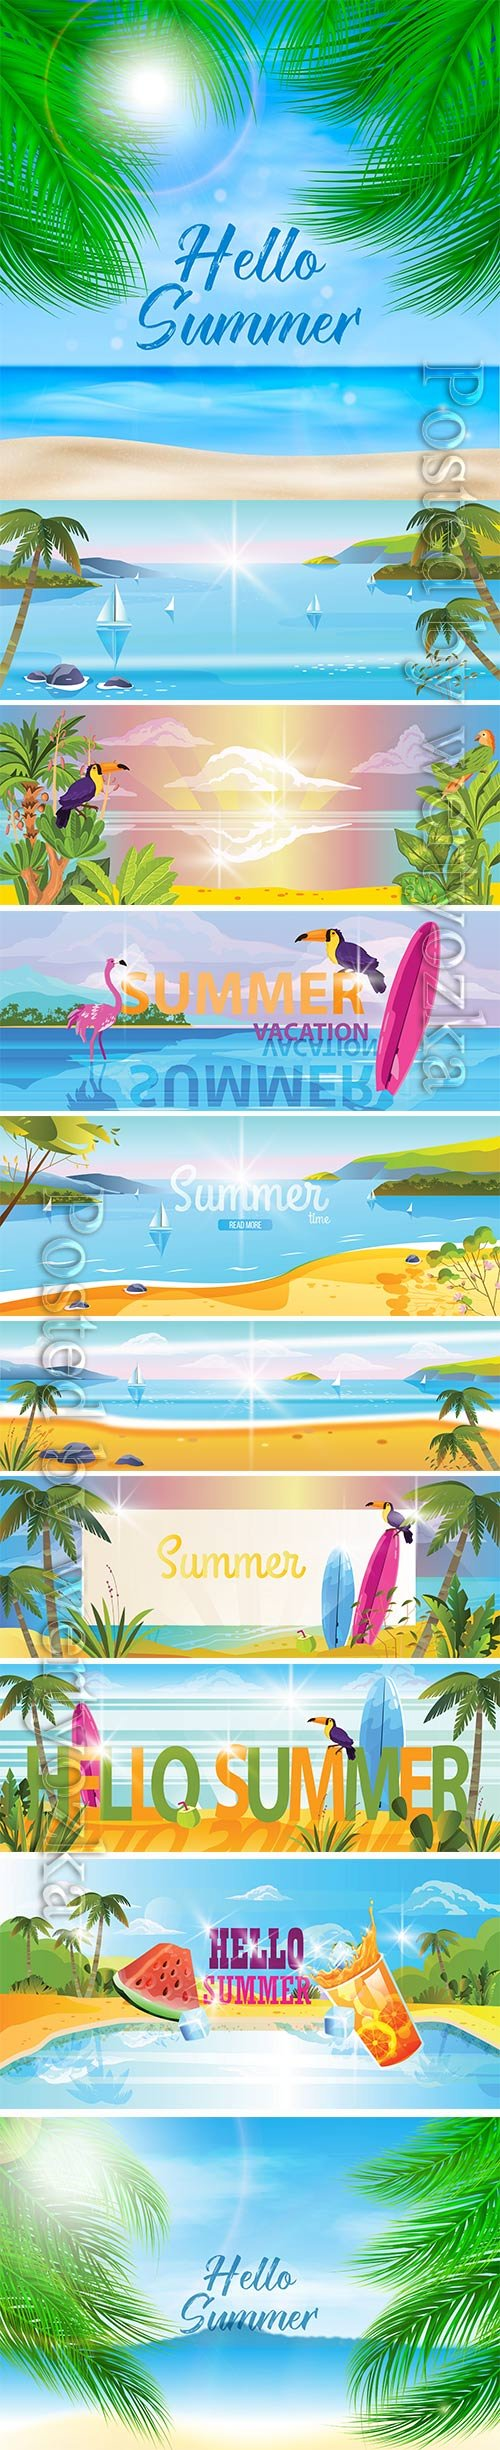 Summer vacation banner with topical landscape view